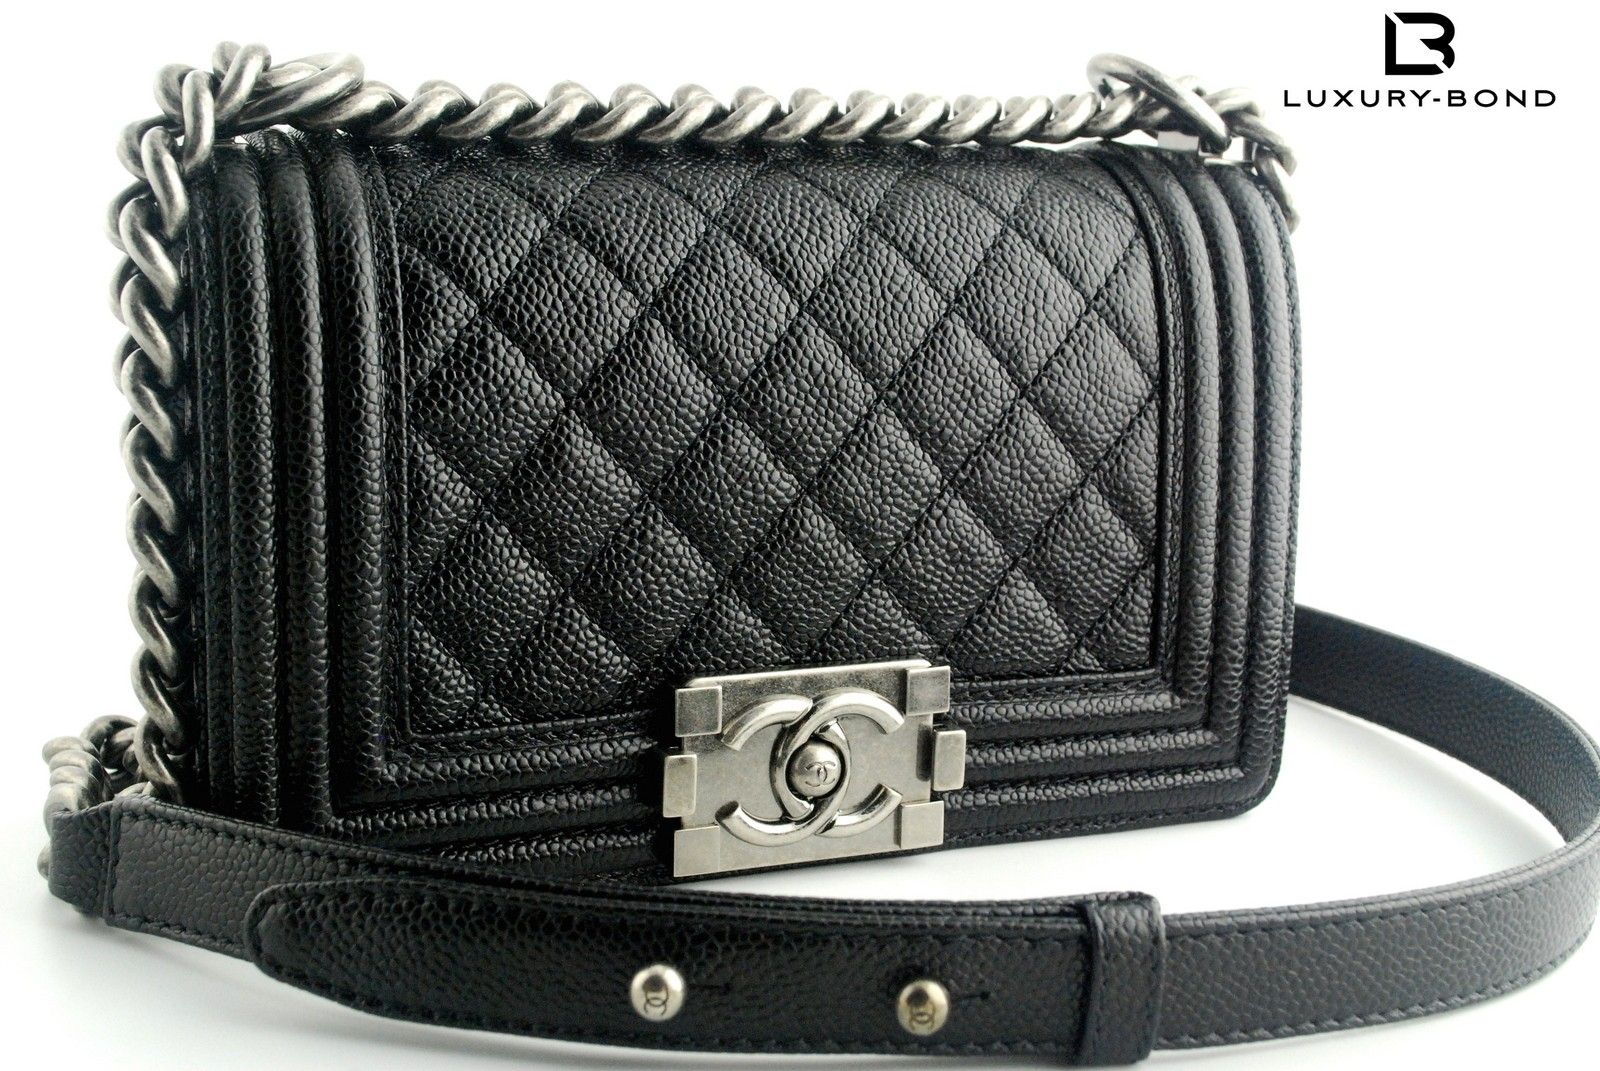 345b6c8b4cce Chanel Le Boy CAVIAR Leather Small Size Black Color Flap Bag 2014 Fall  (14B) Collection